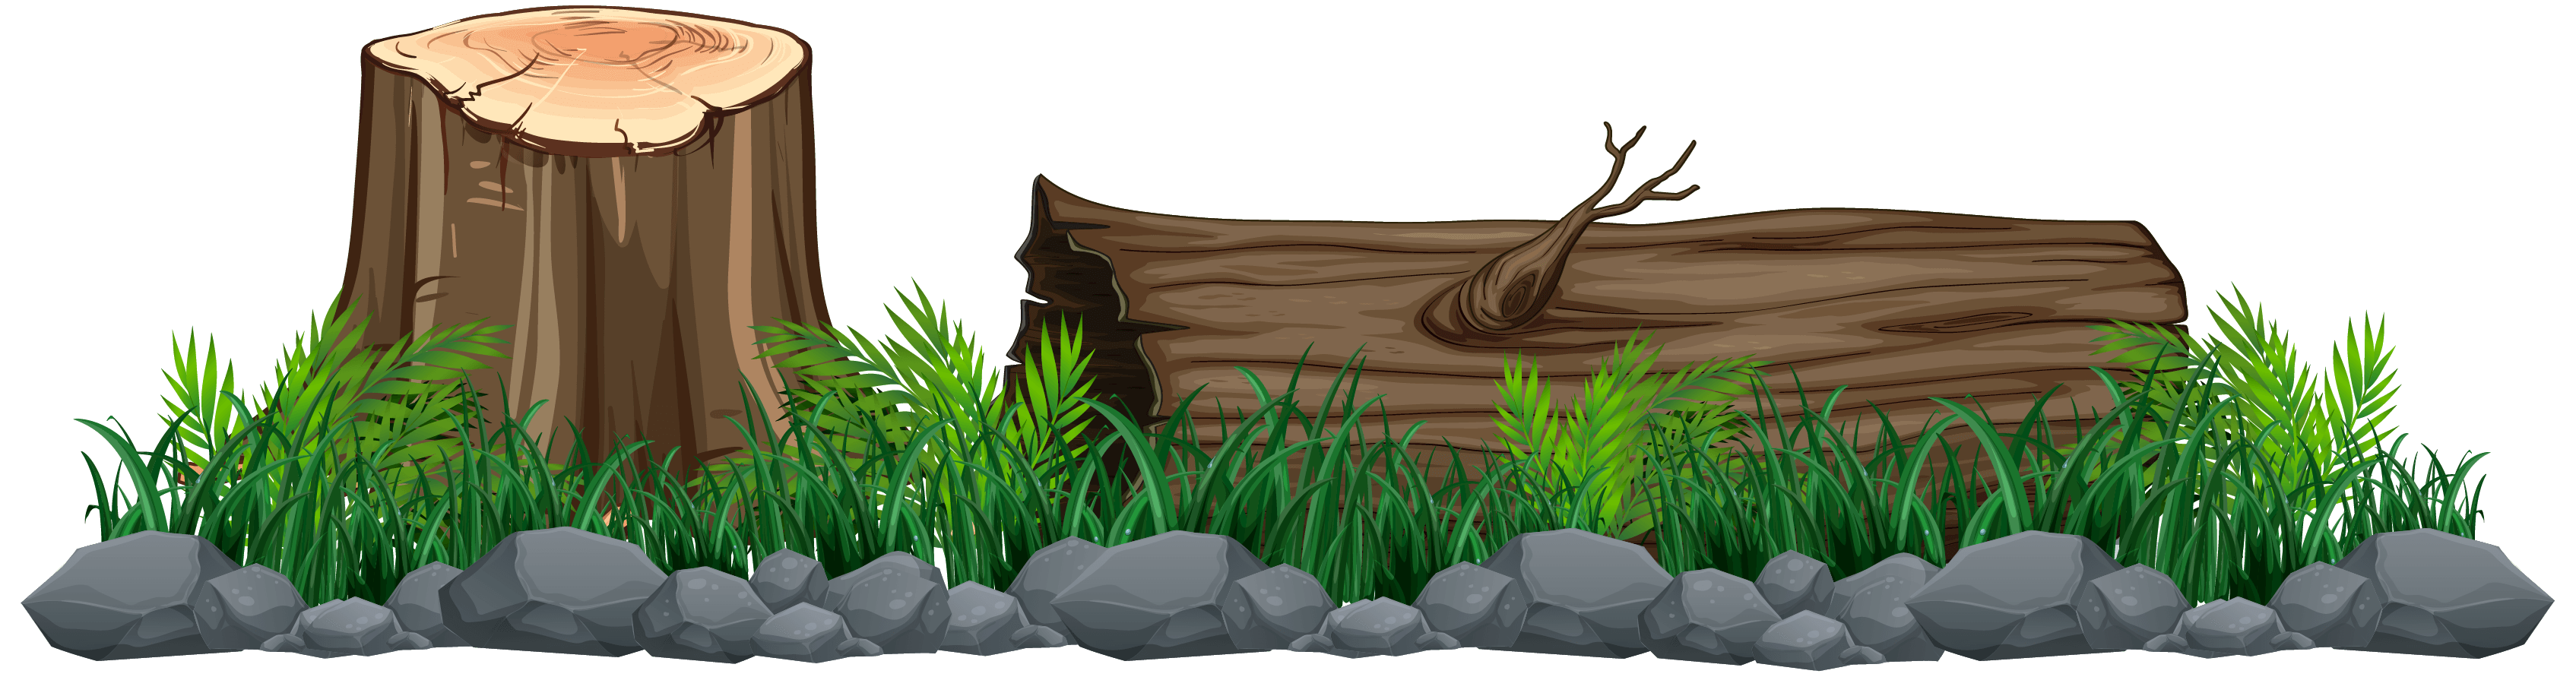 vector image of tree stump and log with grass and rocks